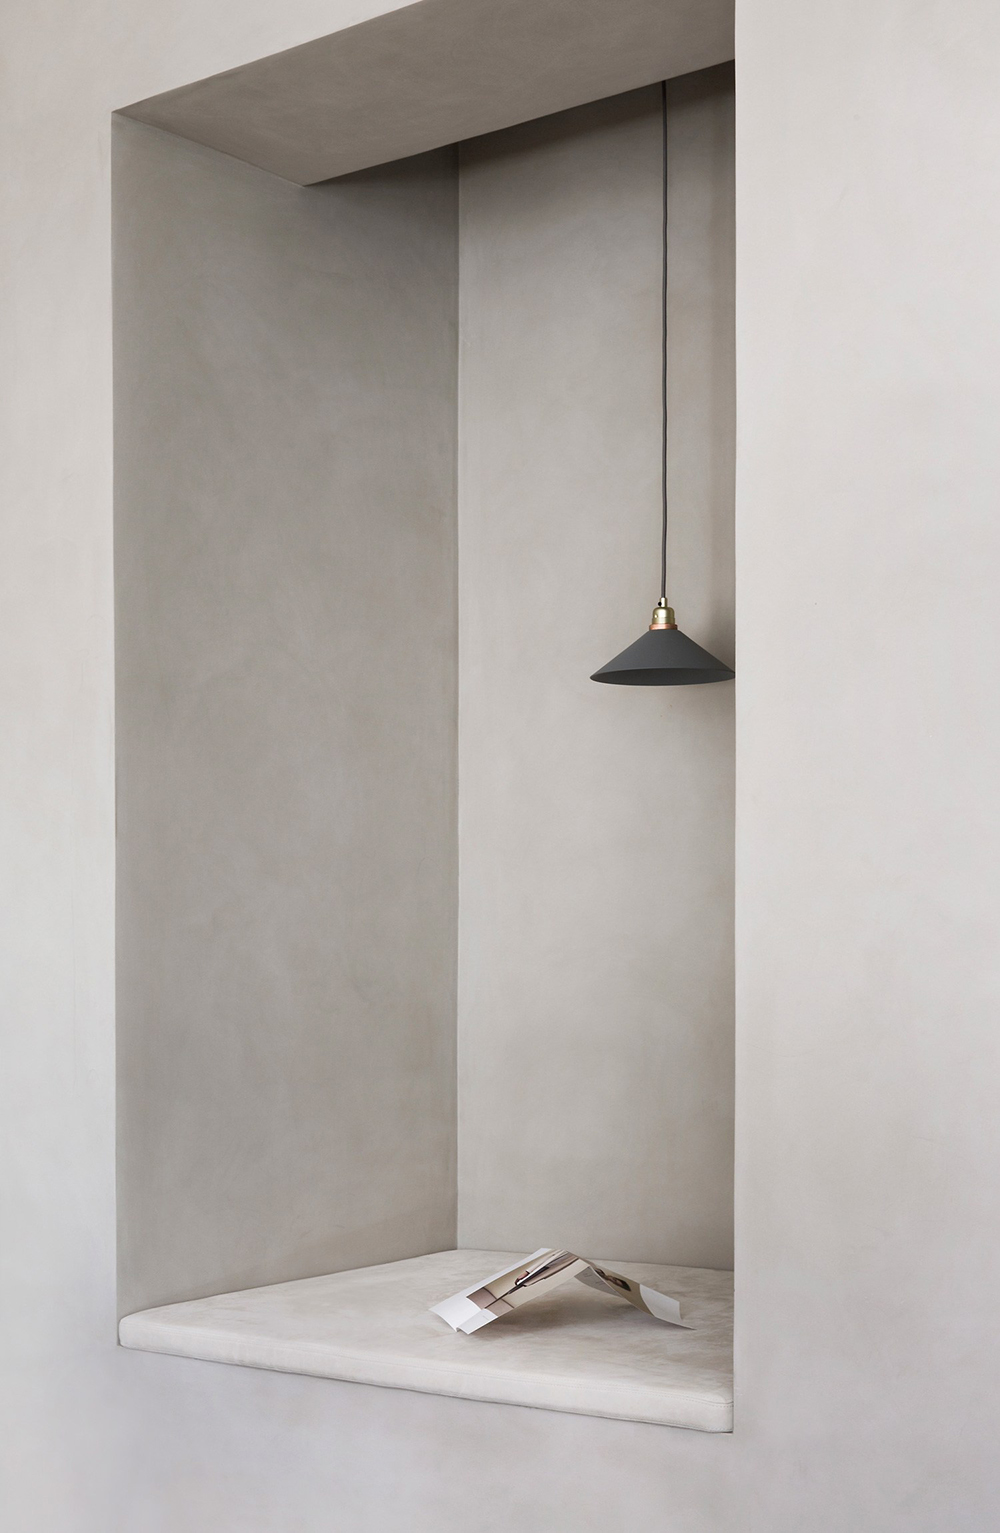 Apartment, Brown, Interiors, Simple, Interiors, Sunday, Sanctuary, Norm Architects, Kinfolk, Oracle, Fox